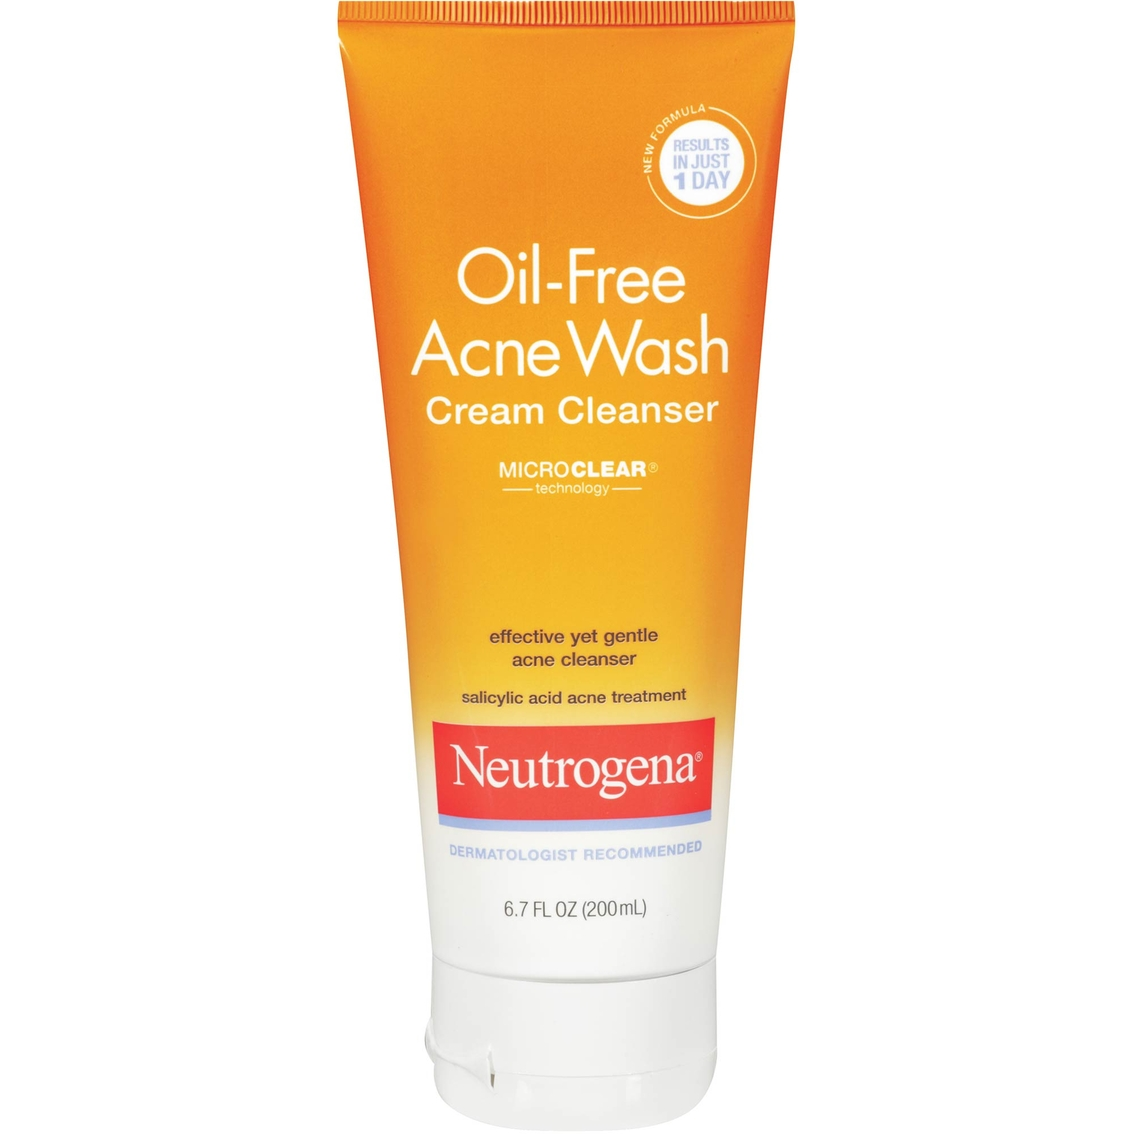 Neutrogena oil free cream cleanser